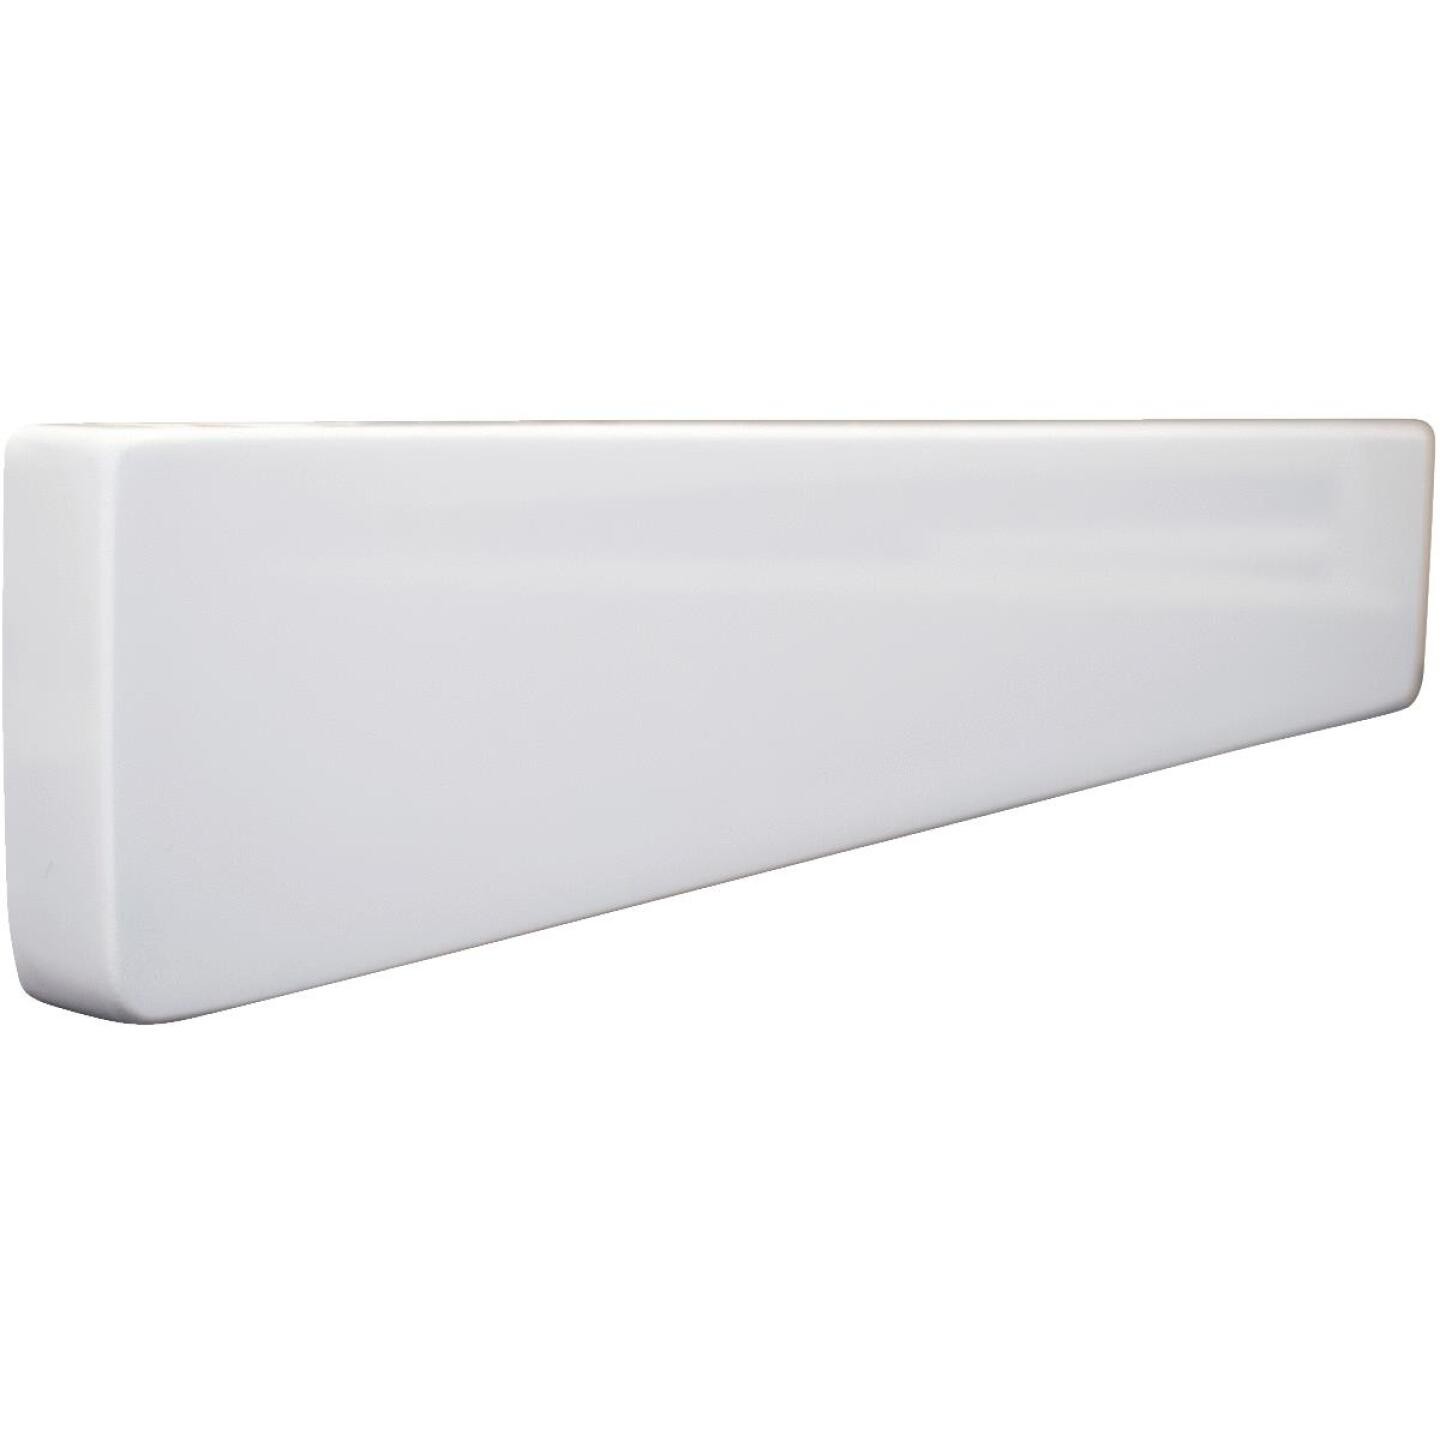 Modular Vanity Tops 4 In. H x 19 In. L Solid White Cultured Marble Side Splash, Universal Image 1